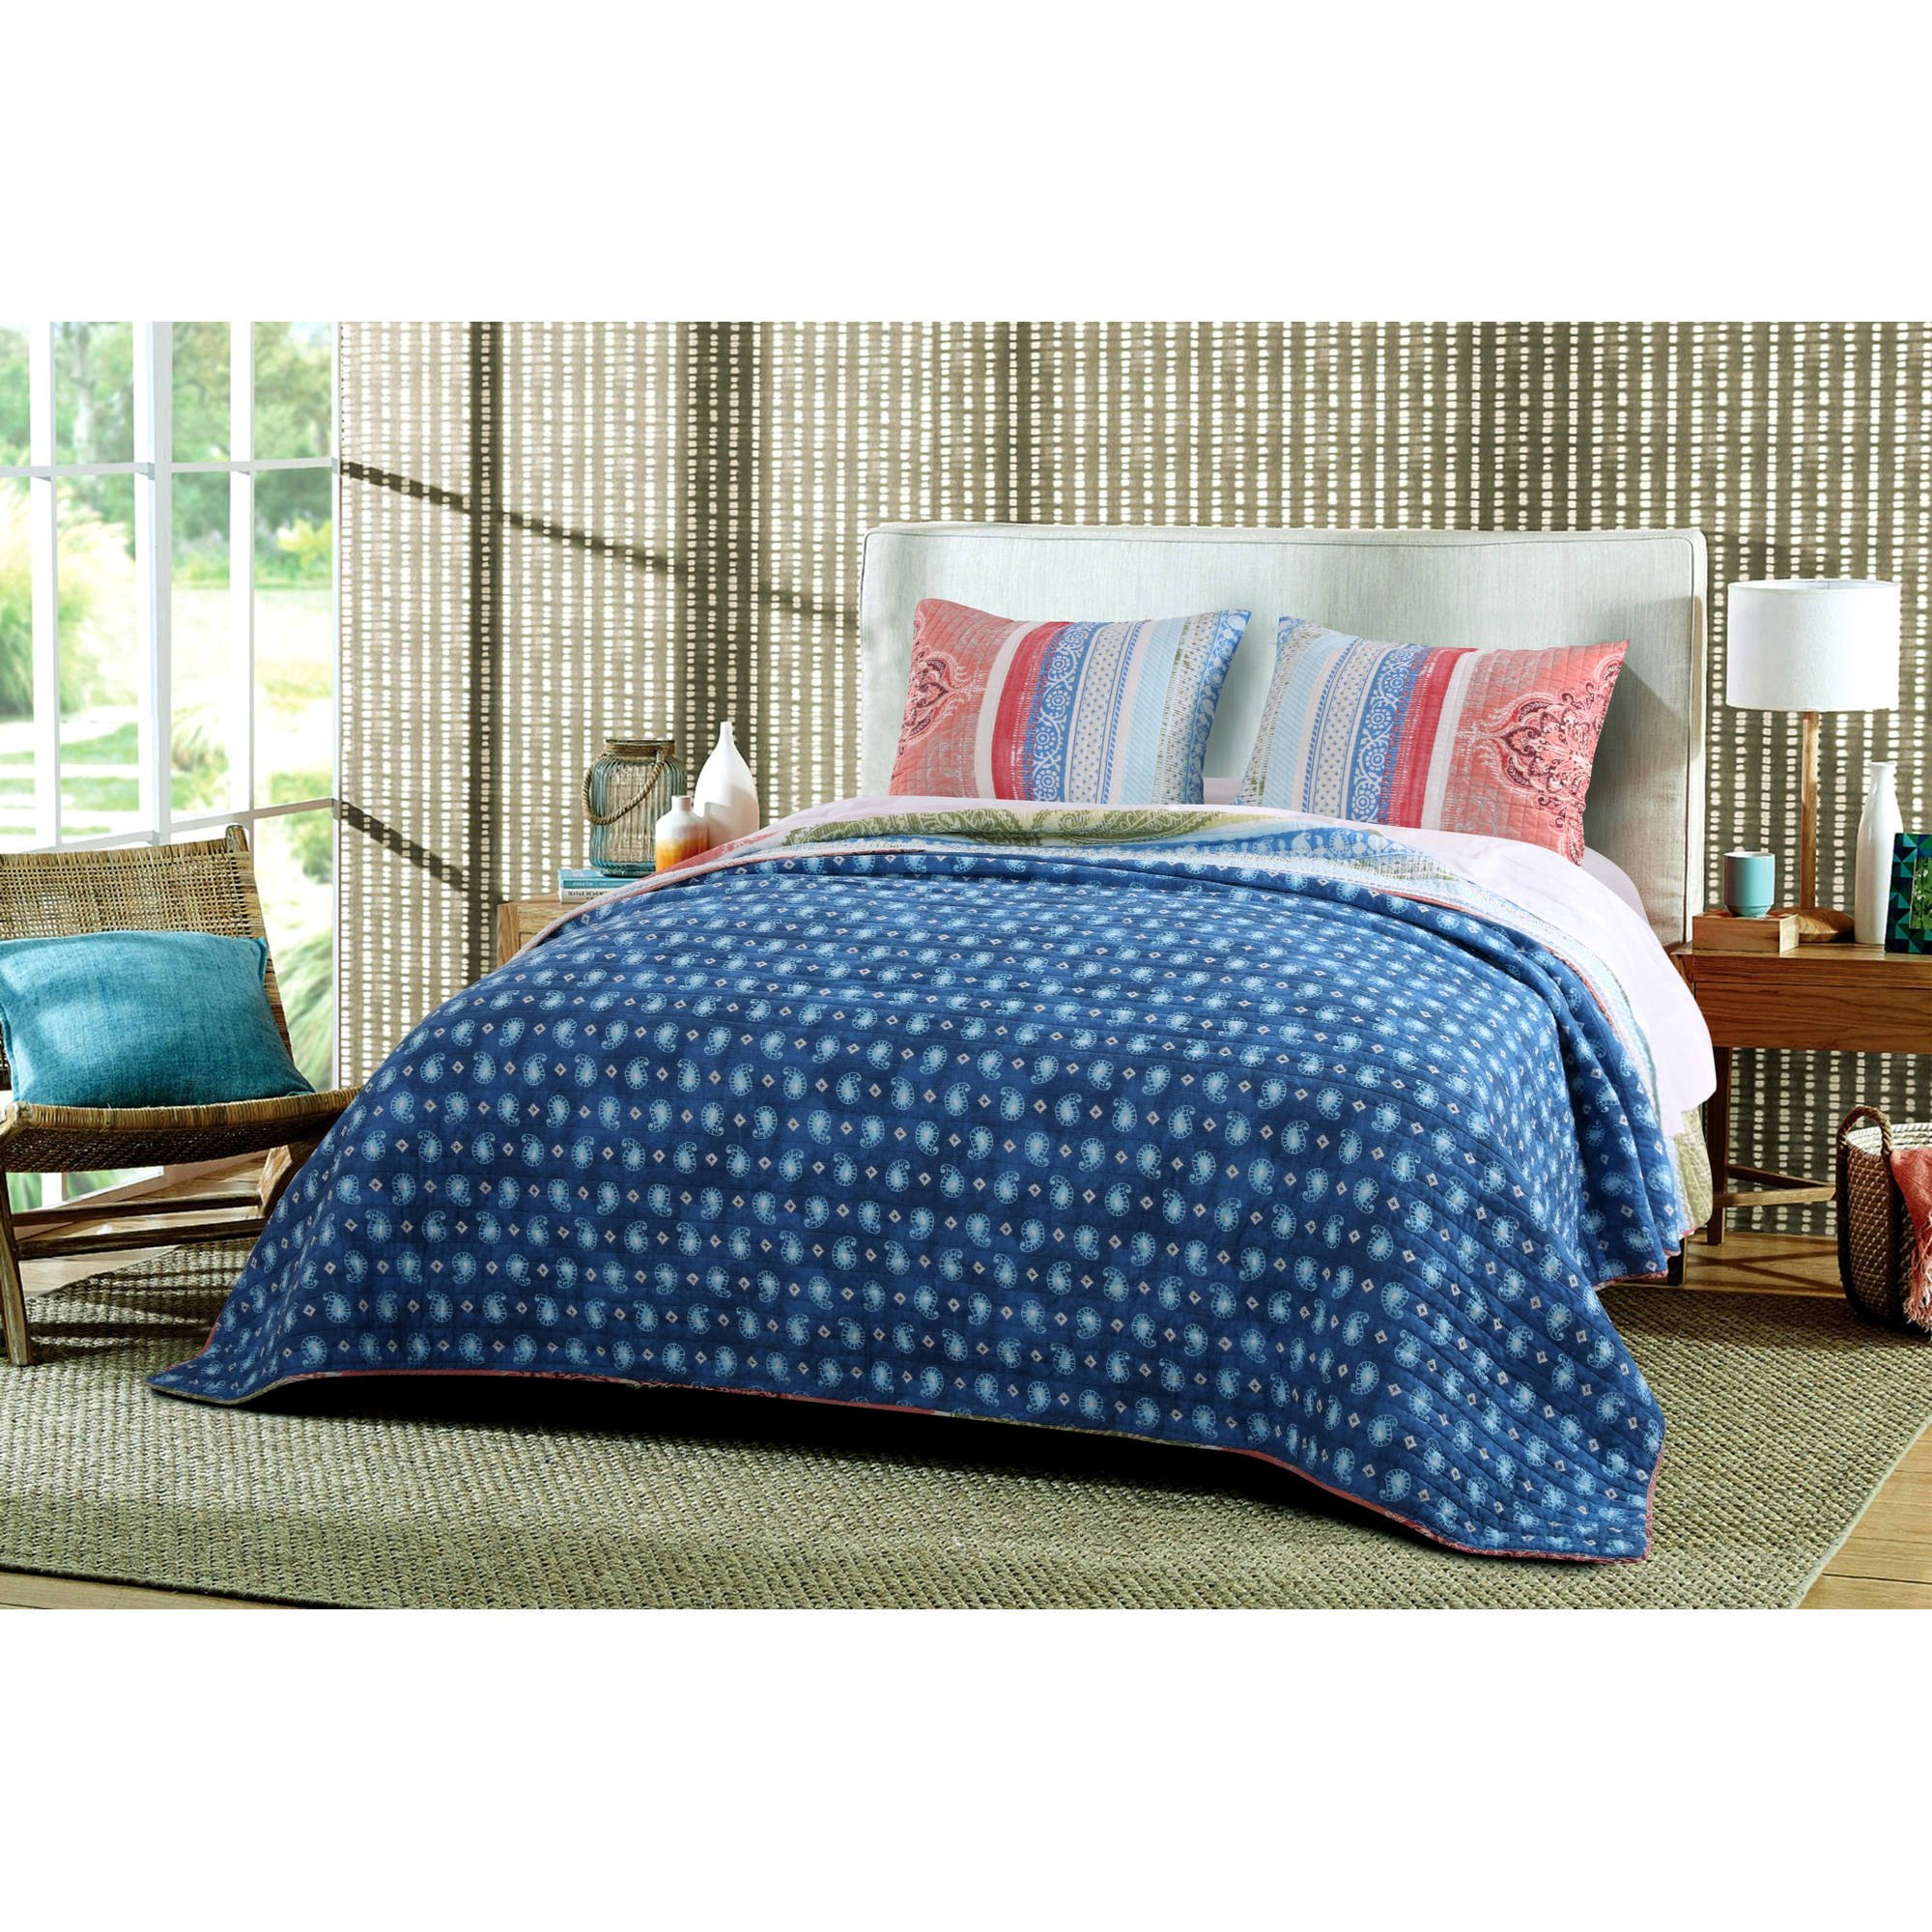 Walmart Bedroom Set Queen Elegant Global Trends Hamilton Quilt Set Walmart